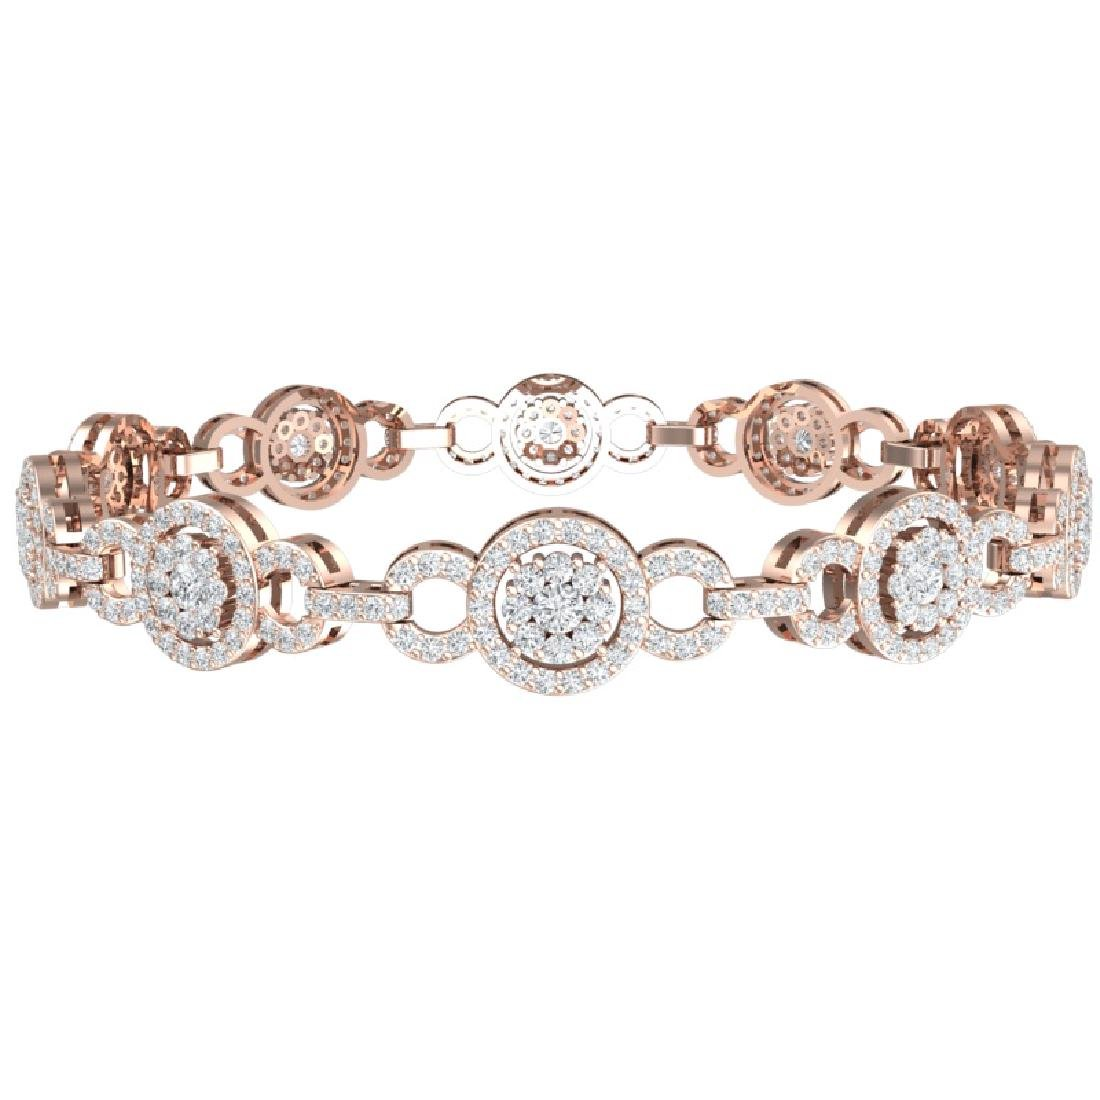 5 CTW Certified SI/I Diamond Halo Bracelet 18K Rose - 3